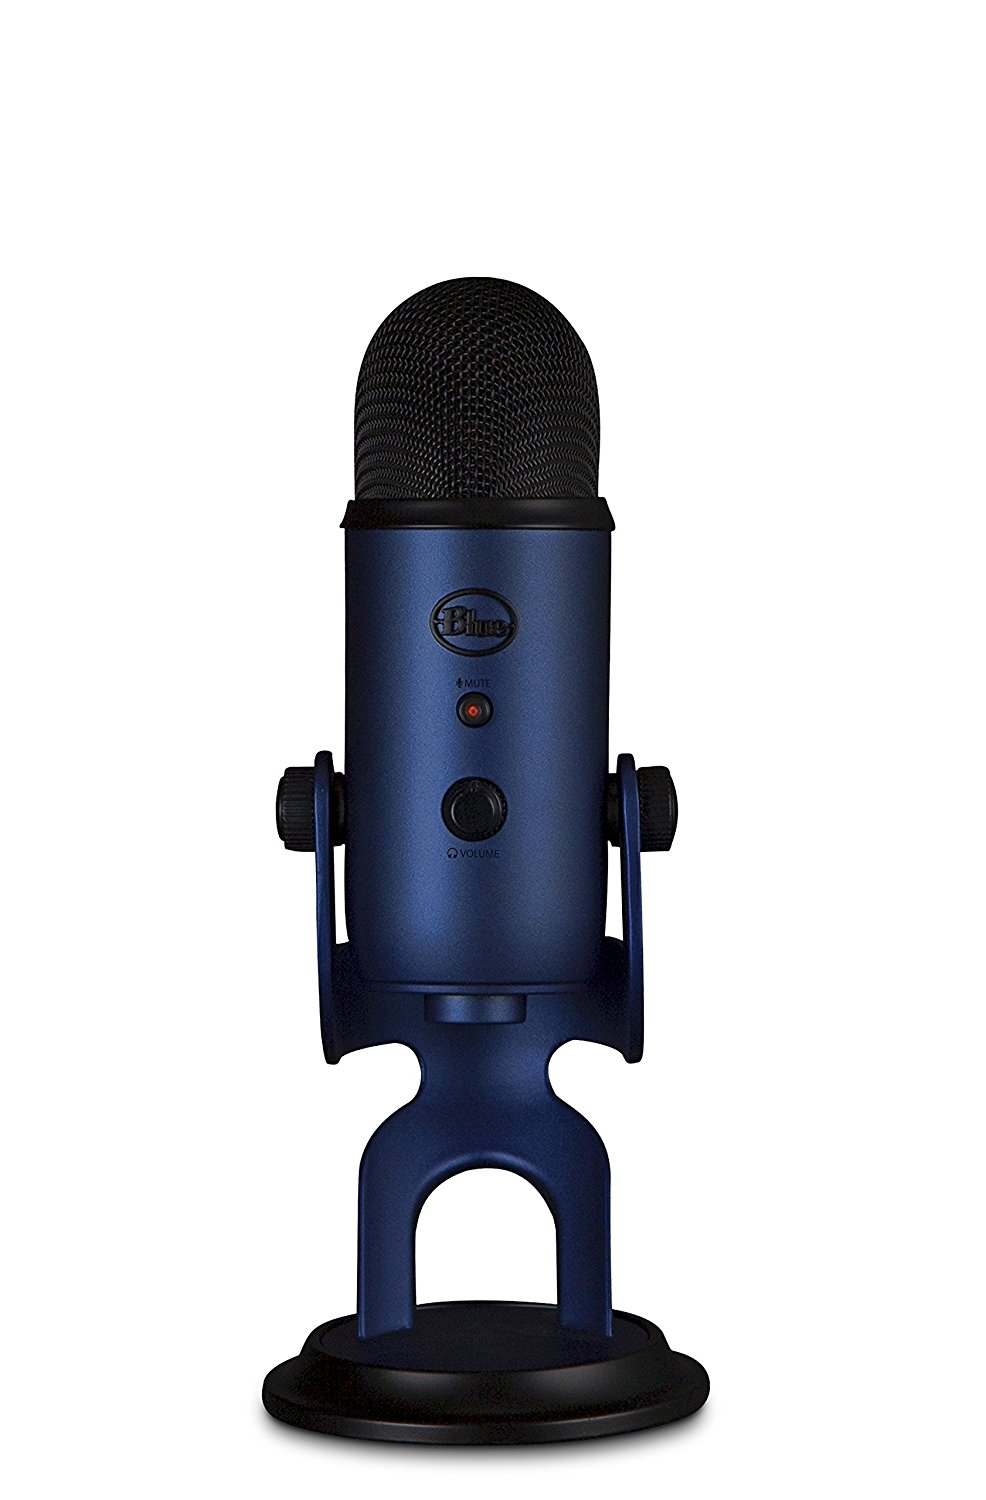 Blue Microphones Blue Yeti USB Microphone